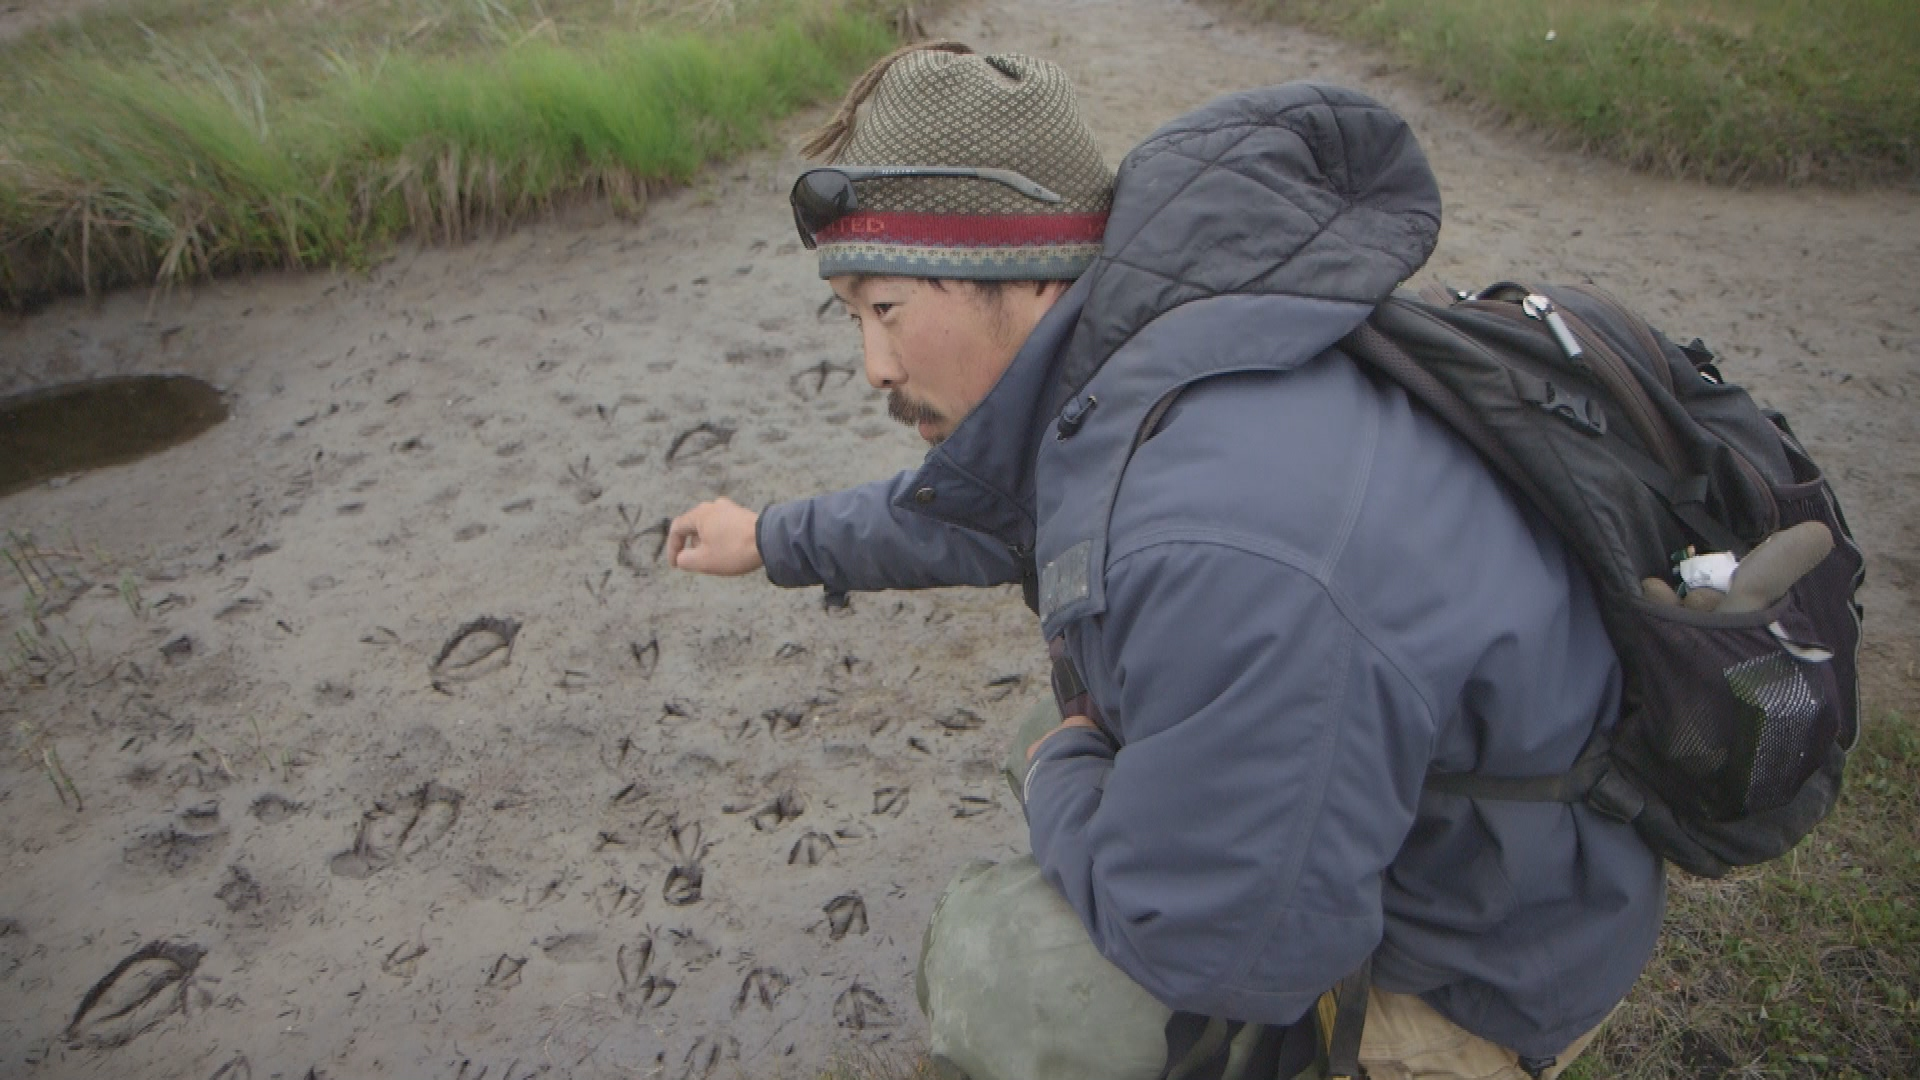 Choi pointing Black brandt tracks Geese grazing lawns experiment Yukon-Kuskokwim Delta